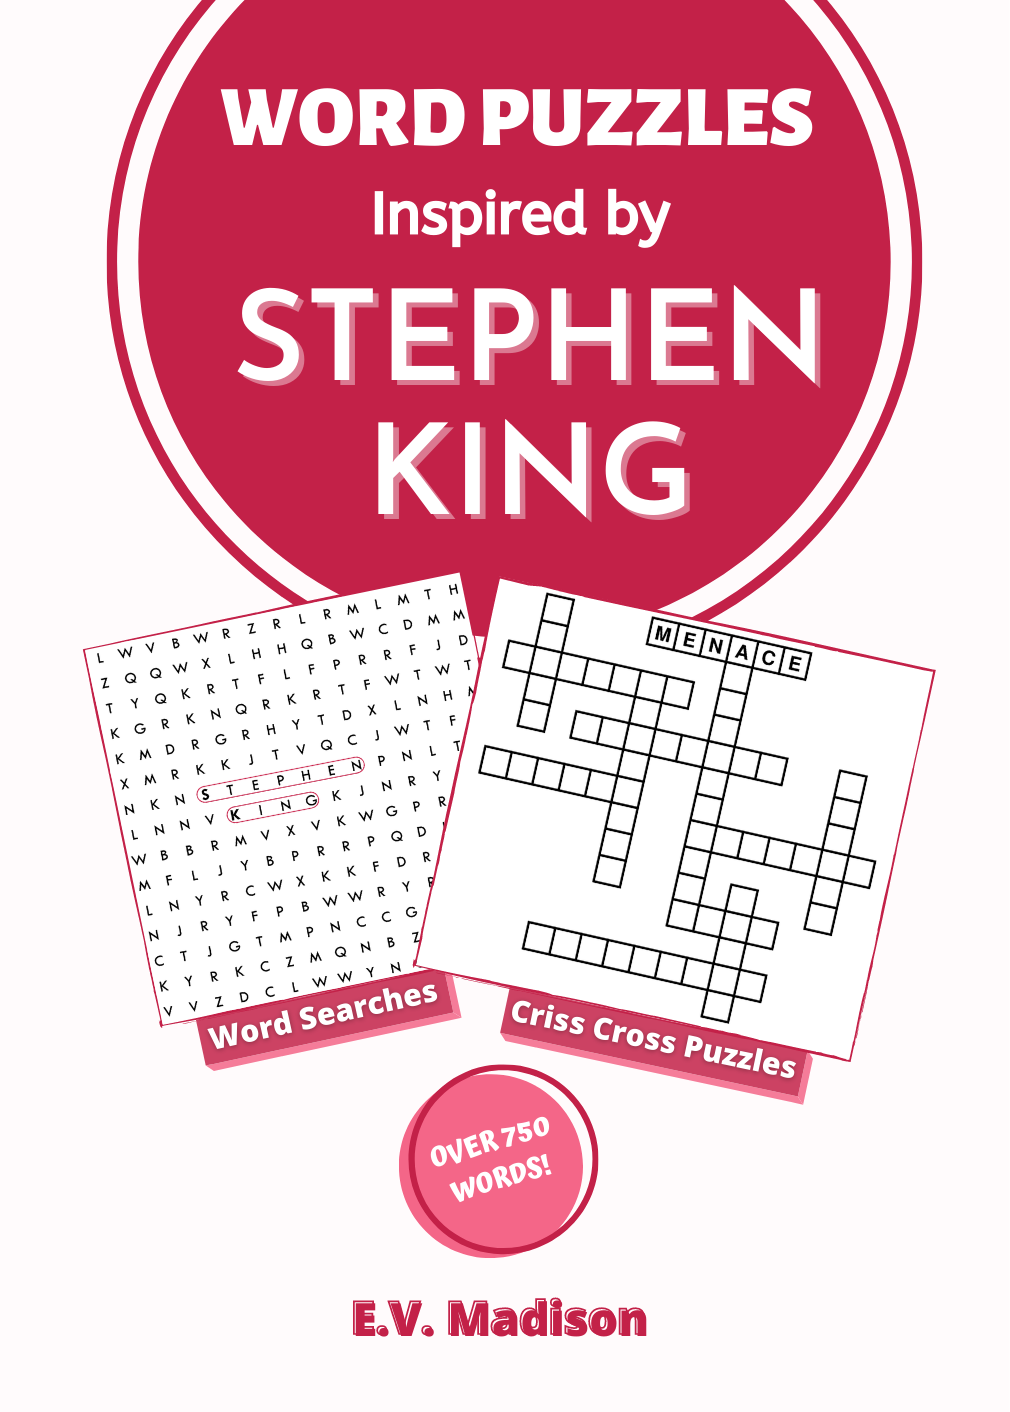 Word Puzzles Inspired by Stephen King